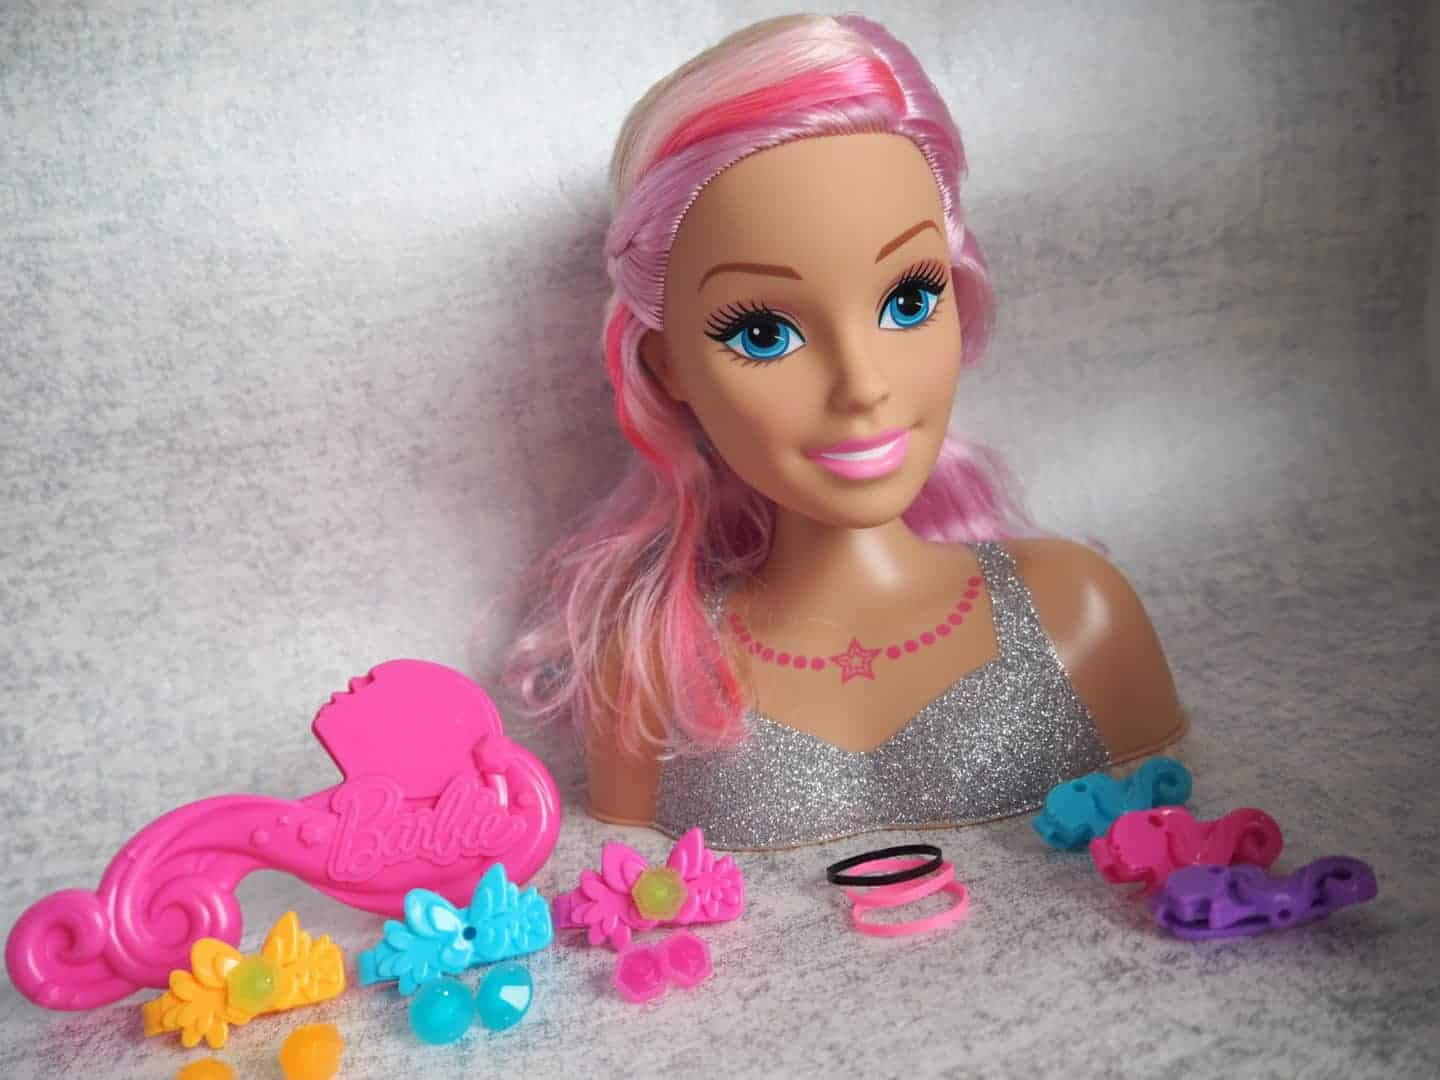 Barbie Dreamtopia Styling Head Review